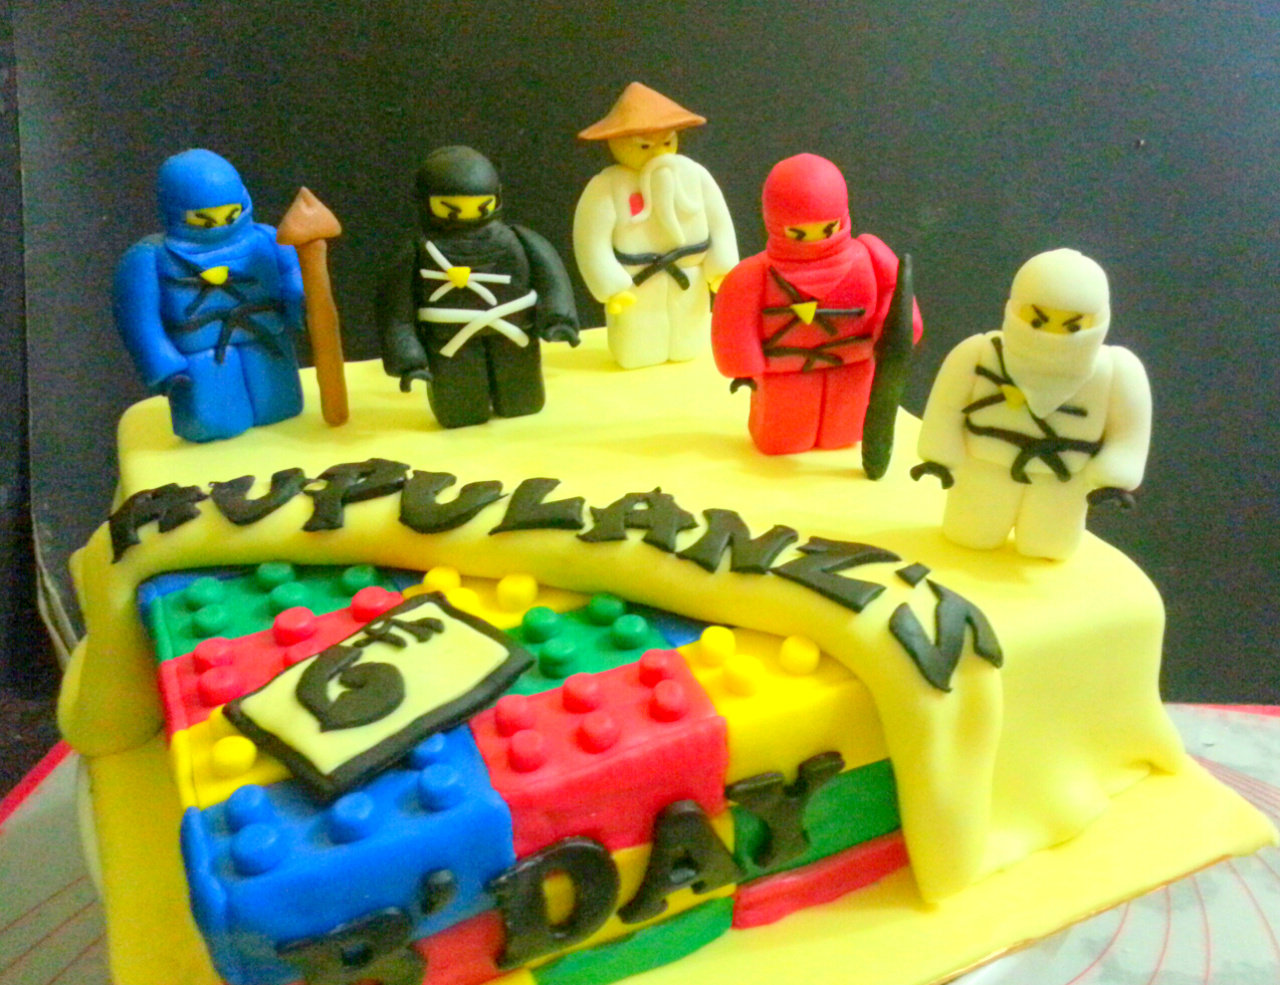 Terrific Ninjago Cakes Decoration Ideas Little Birthday Cakes Funny Birthday Cards Online Inifofree Goldxyz